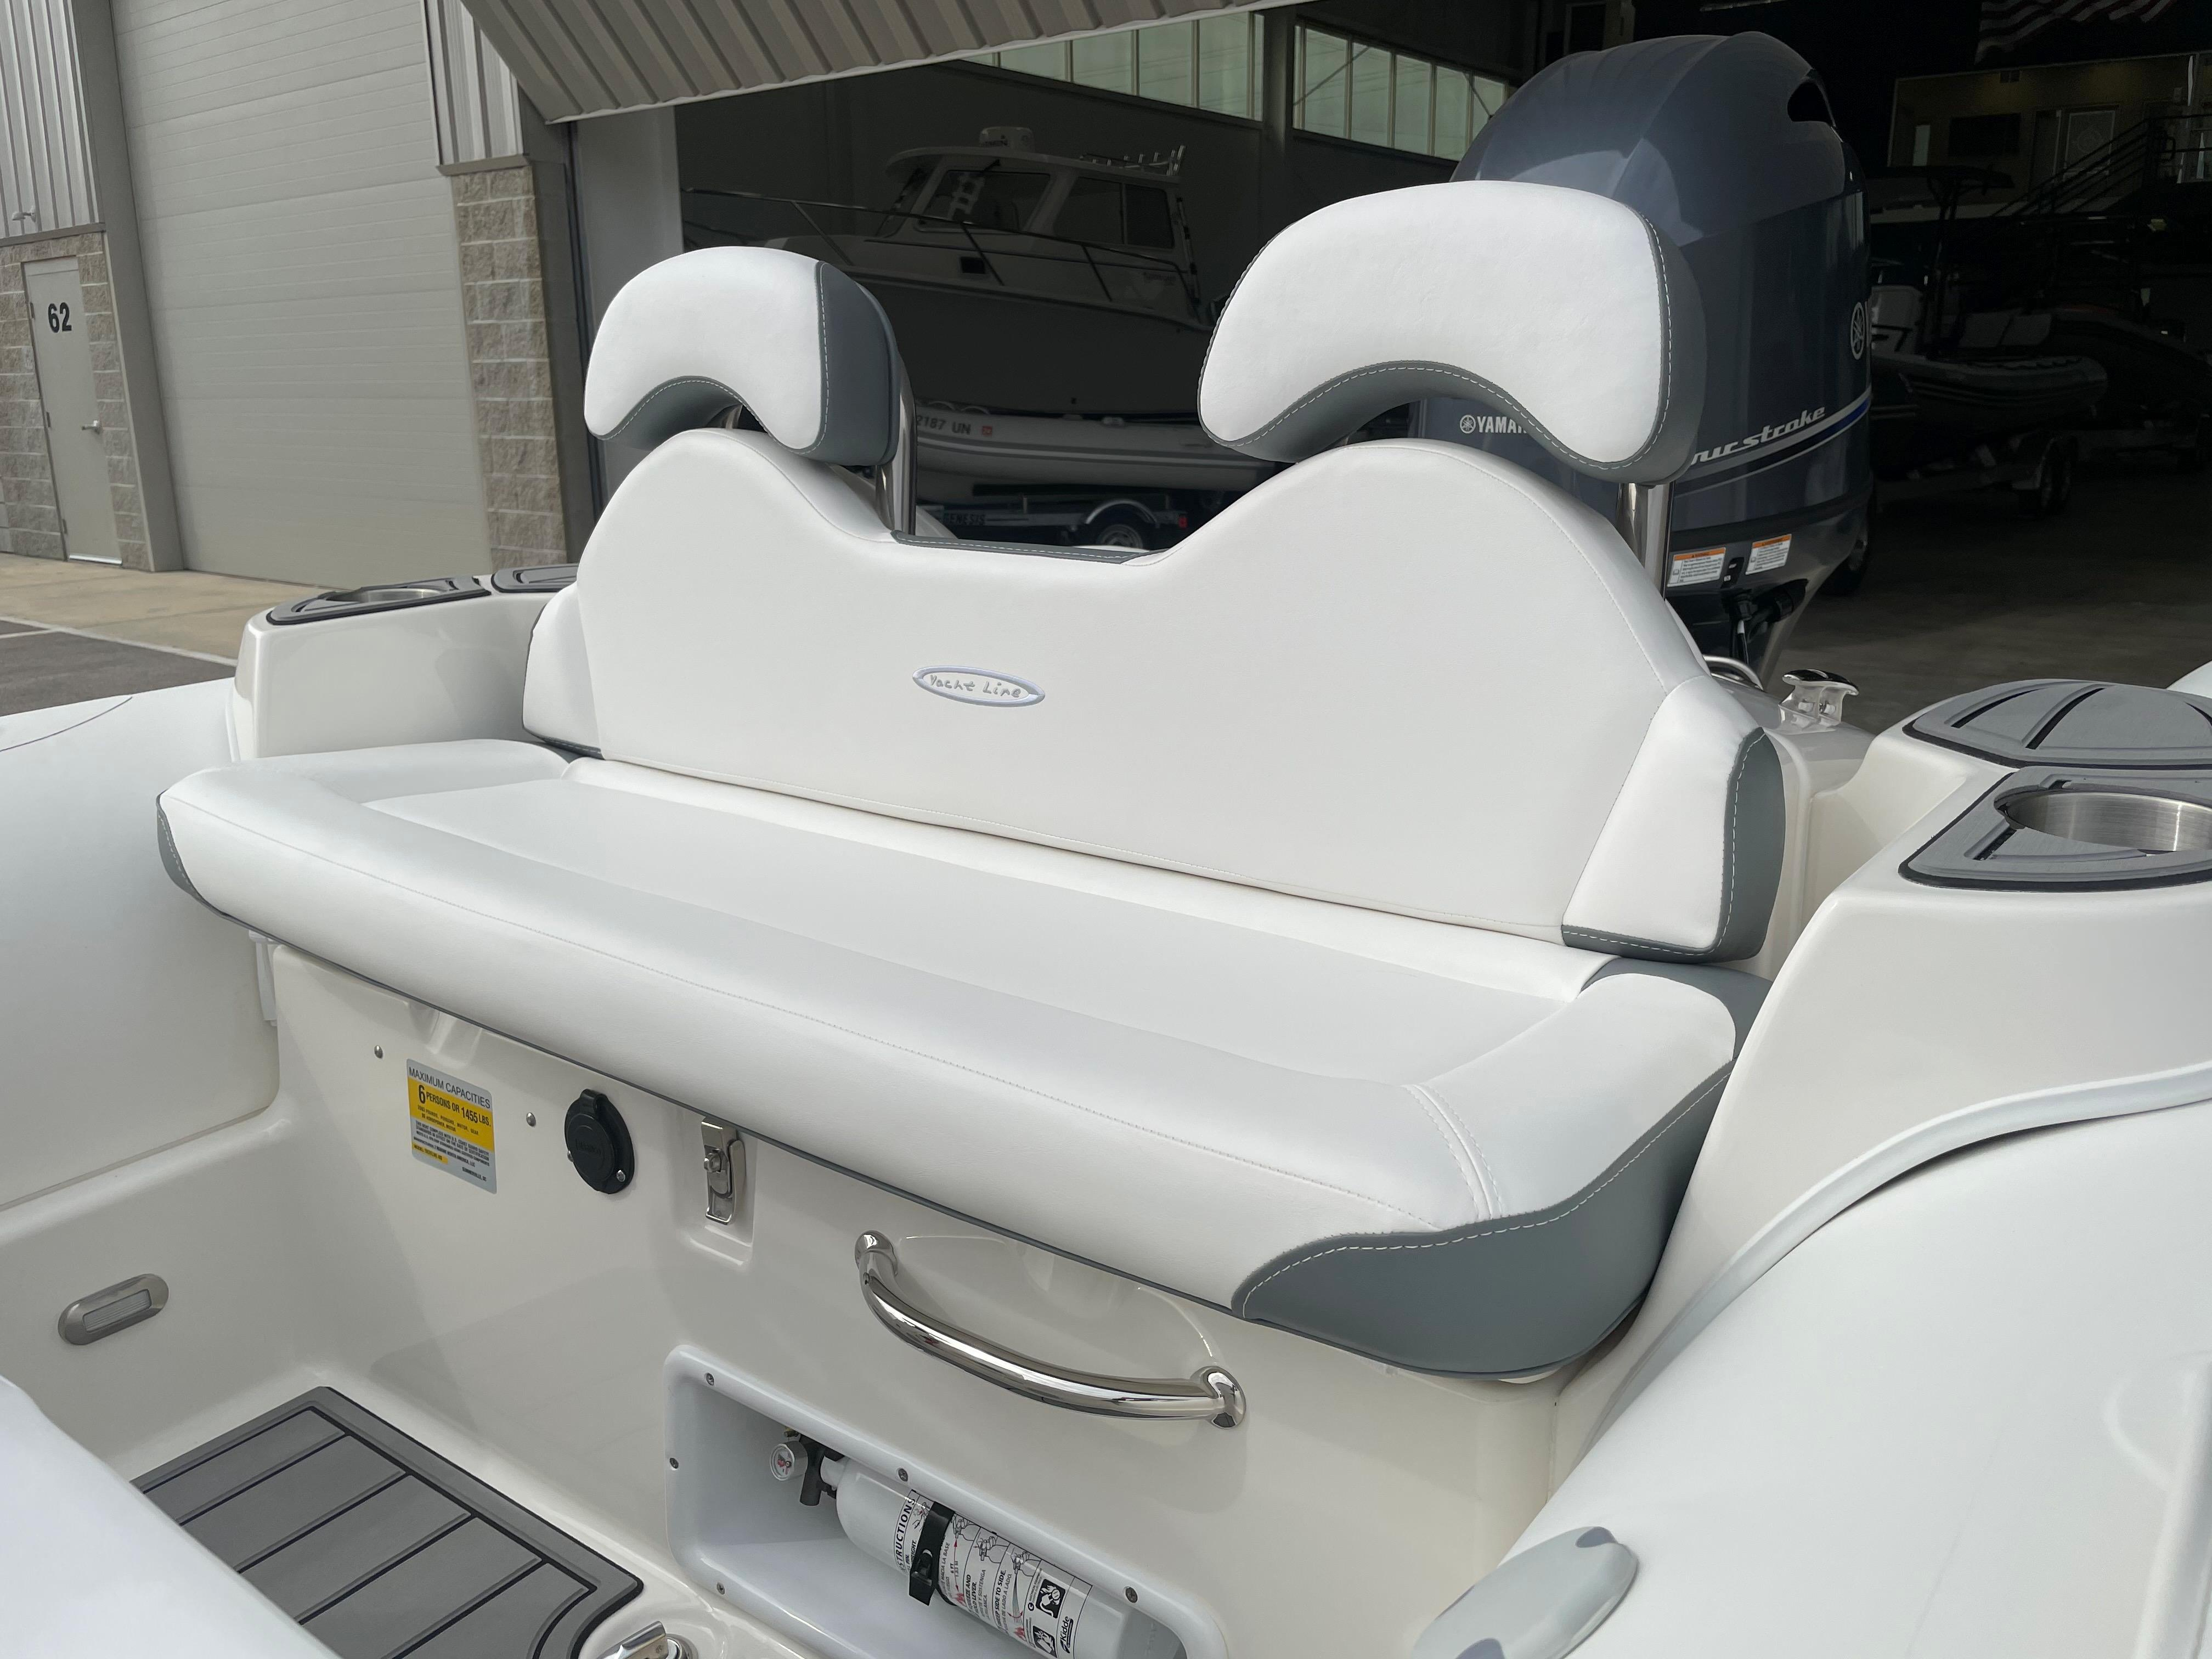 2022 Zodiac Yachtline 490 Deluxe NEO GL Edition 90hp On Order, Image 24